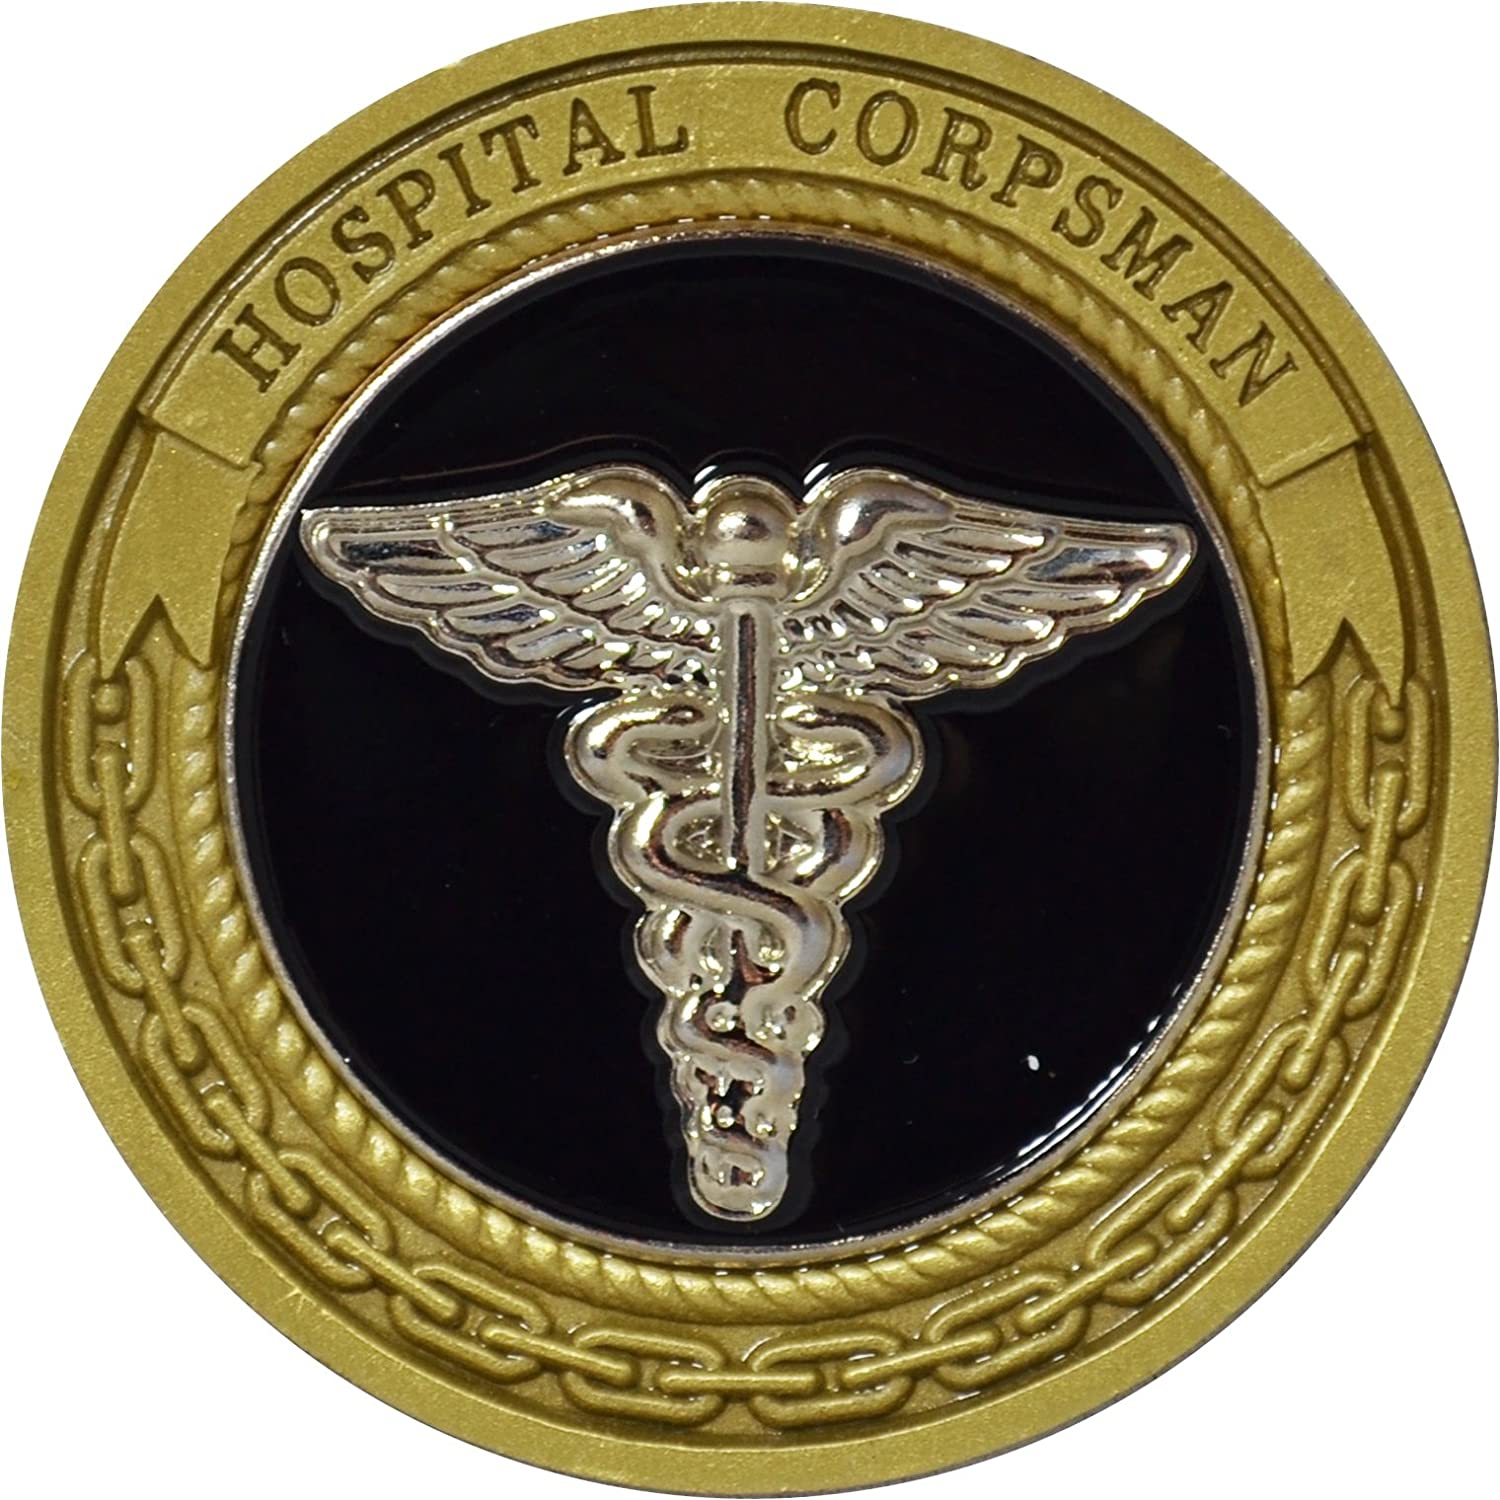 Amazon navy hospital corpsman challenge coin by military amazon navy hospital corpsman challenge coin by military productions toys games biocorpaavc Gallery